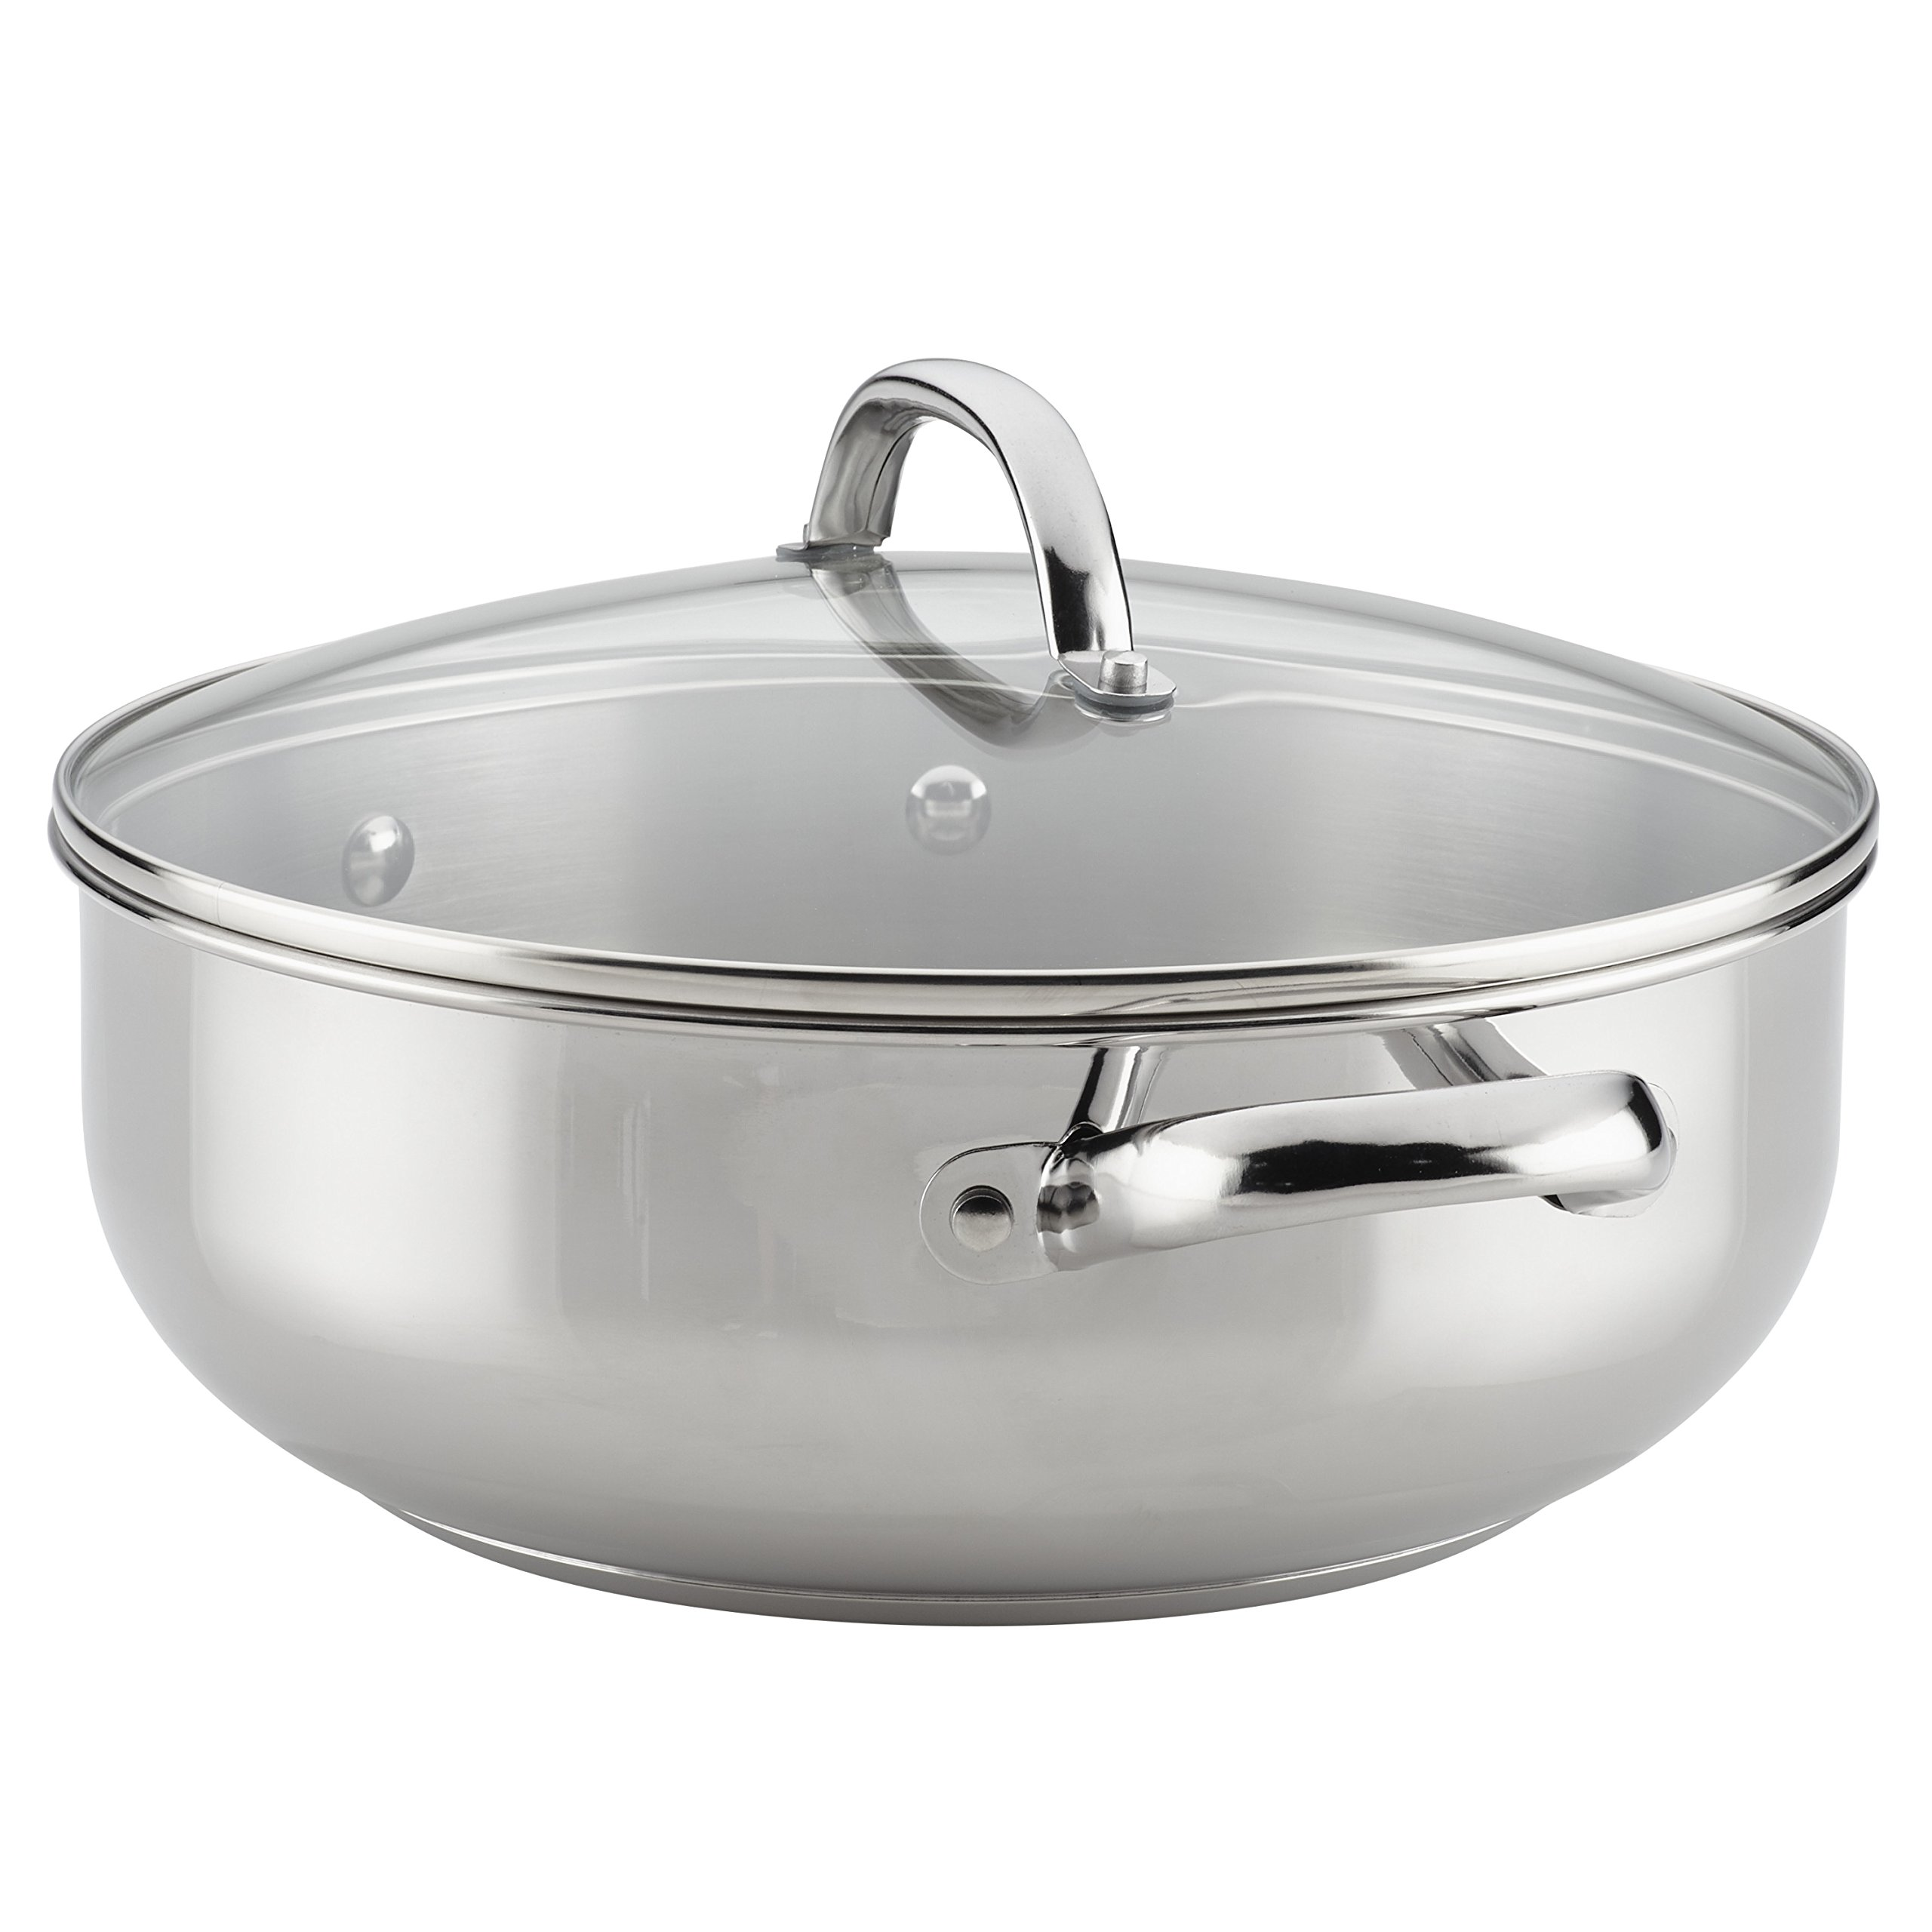 Farberware Buena Cocina Stainless Steel Covered Casserole, 6-Quart, Silver by Farberware